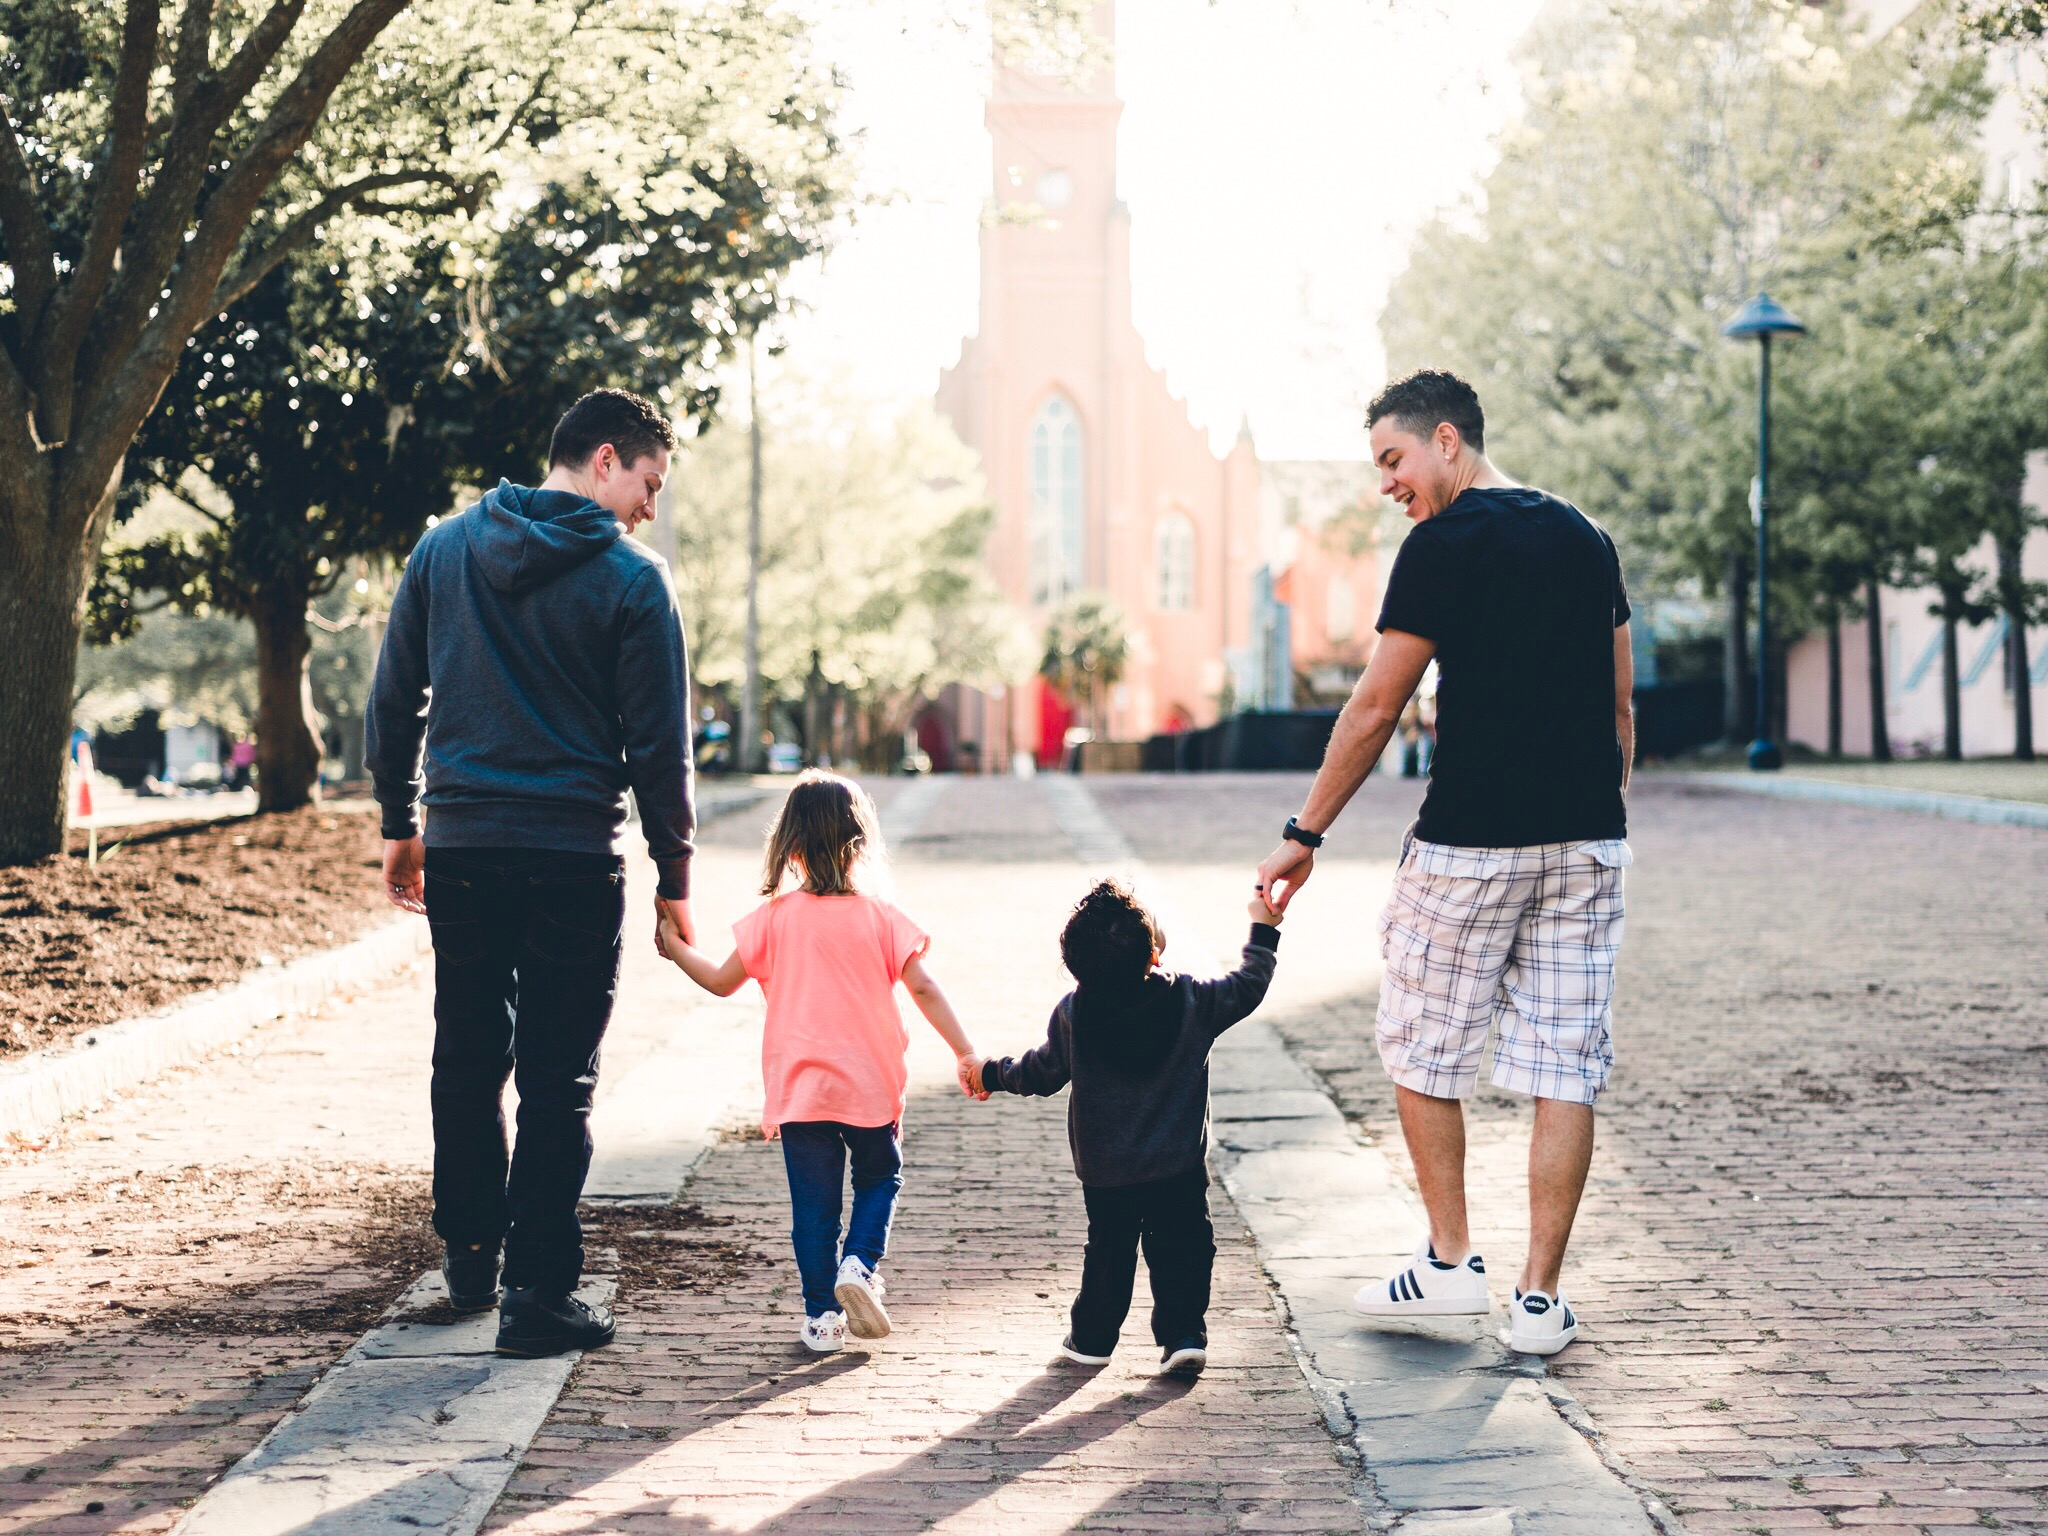 gay-couple-walking-with-their-kids_t20_9lRYYK